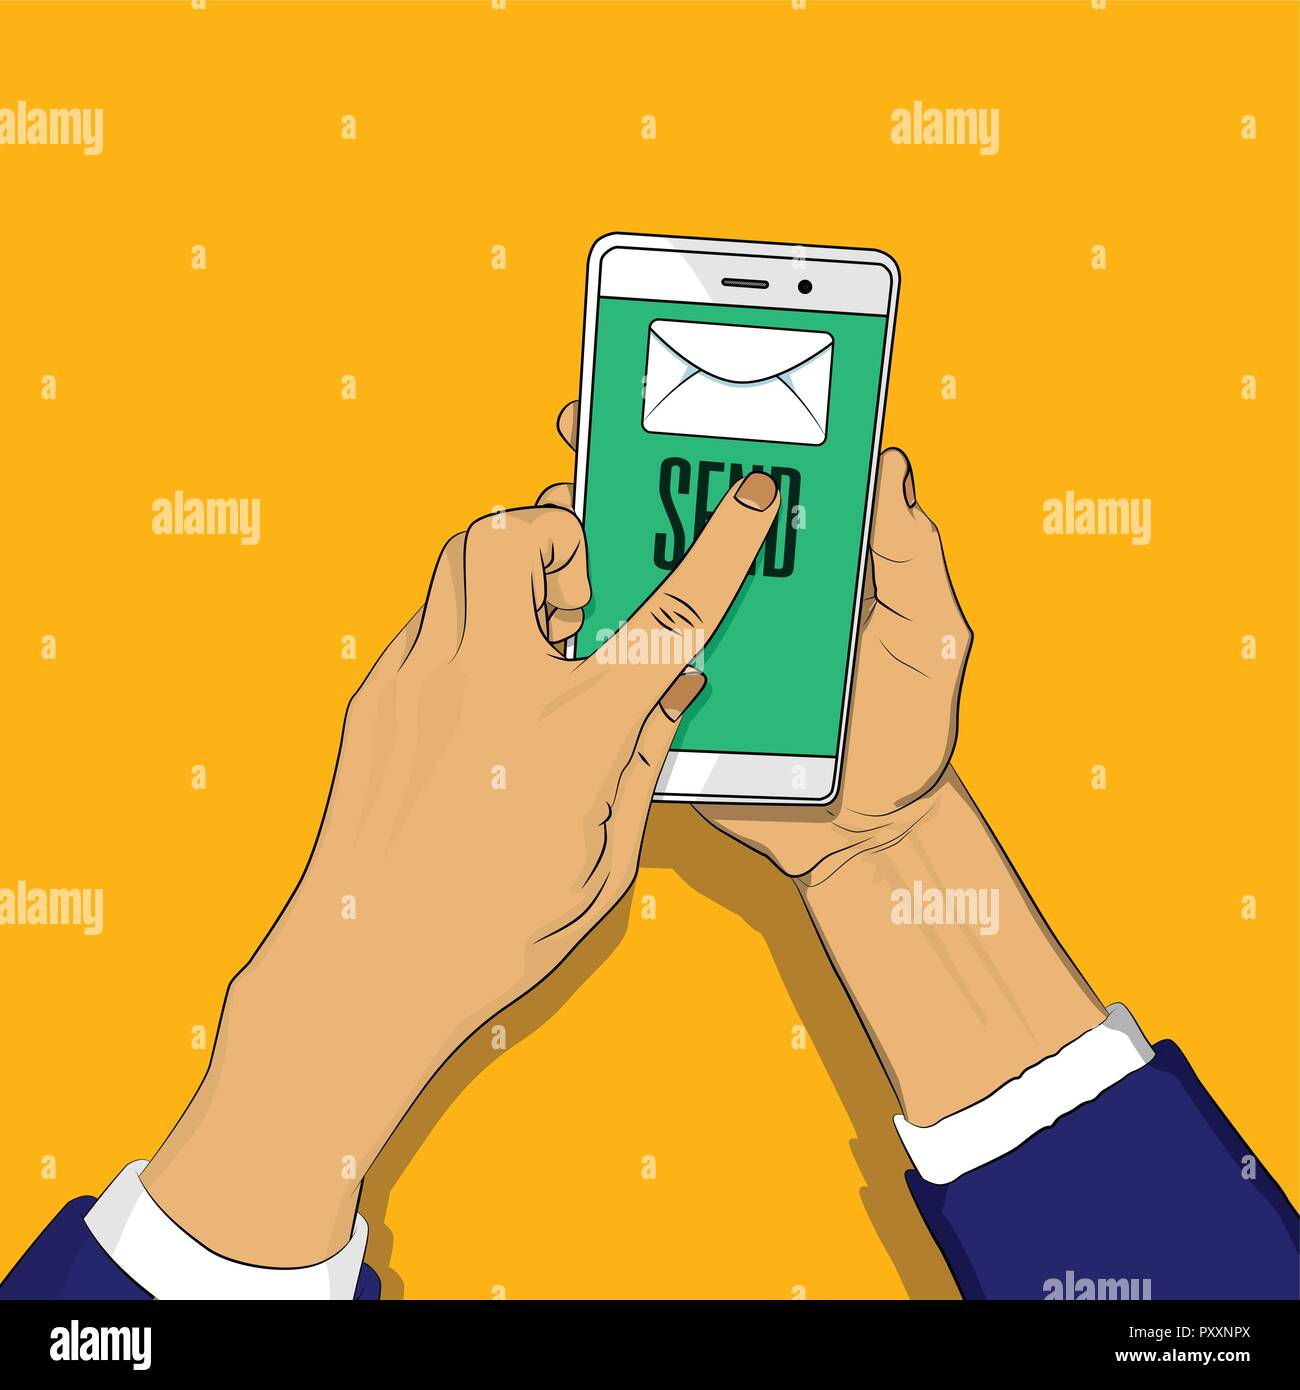 Hand holding phone with letter and send button on the screen, a finger touches the send button. Vector illustrated retro comic book cartoon for advert - Stock Image